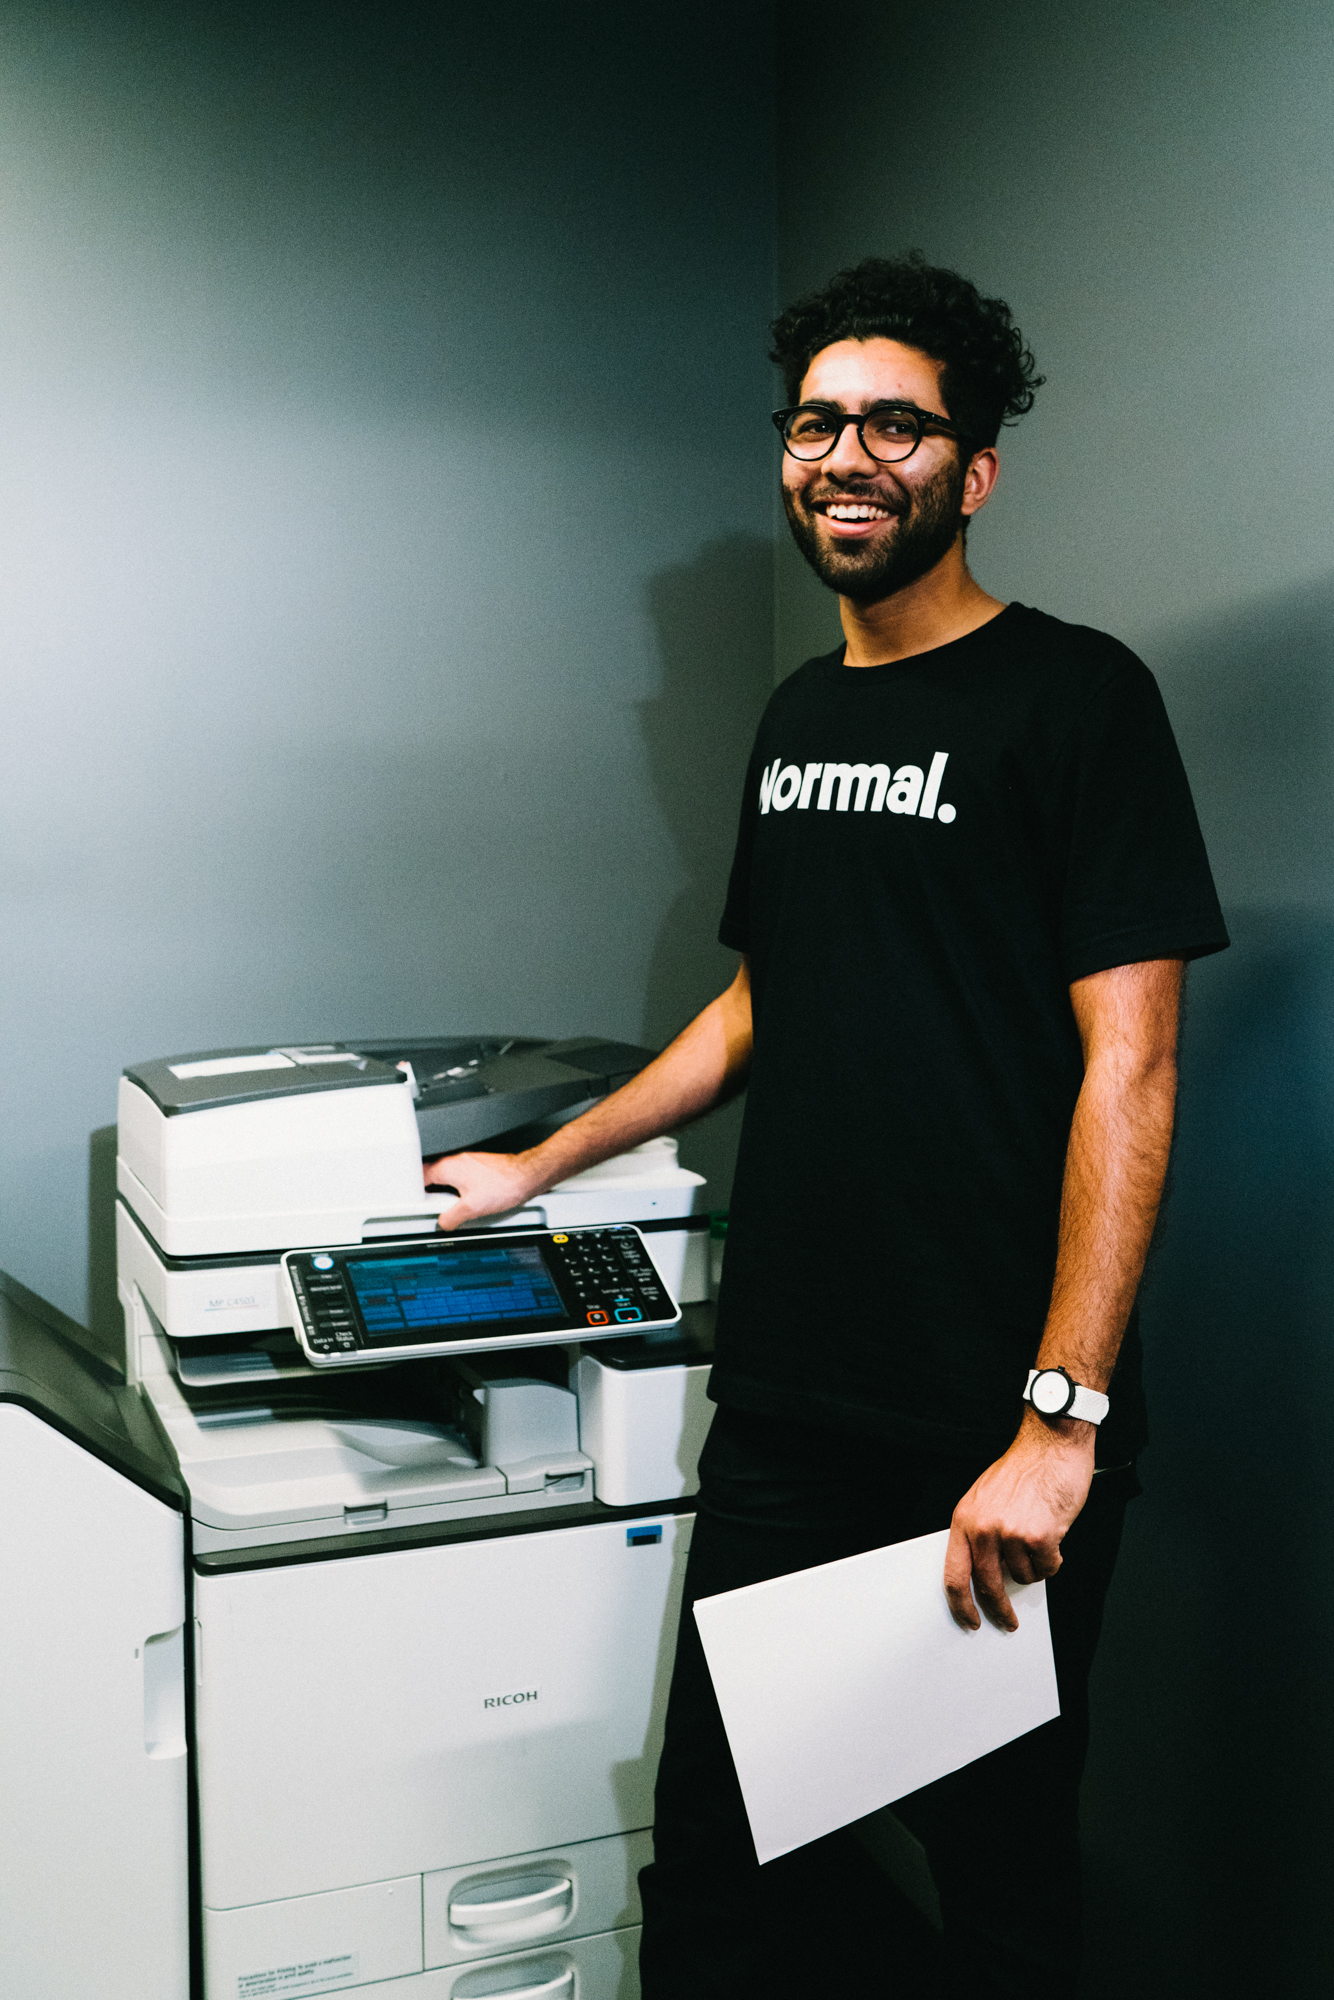 1 Normal standing by a copy machine